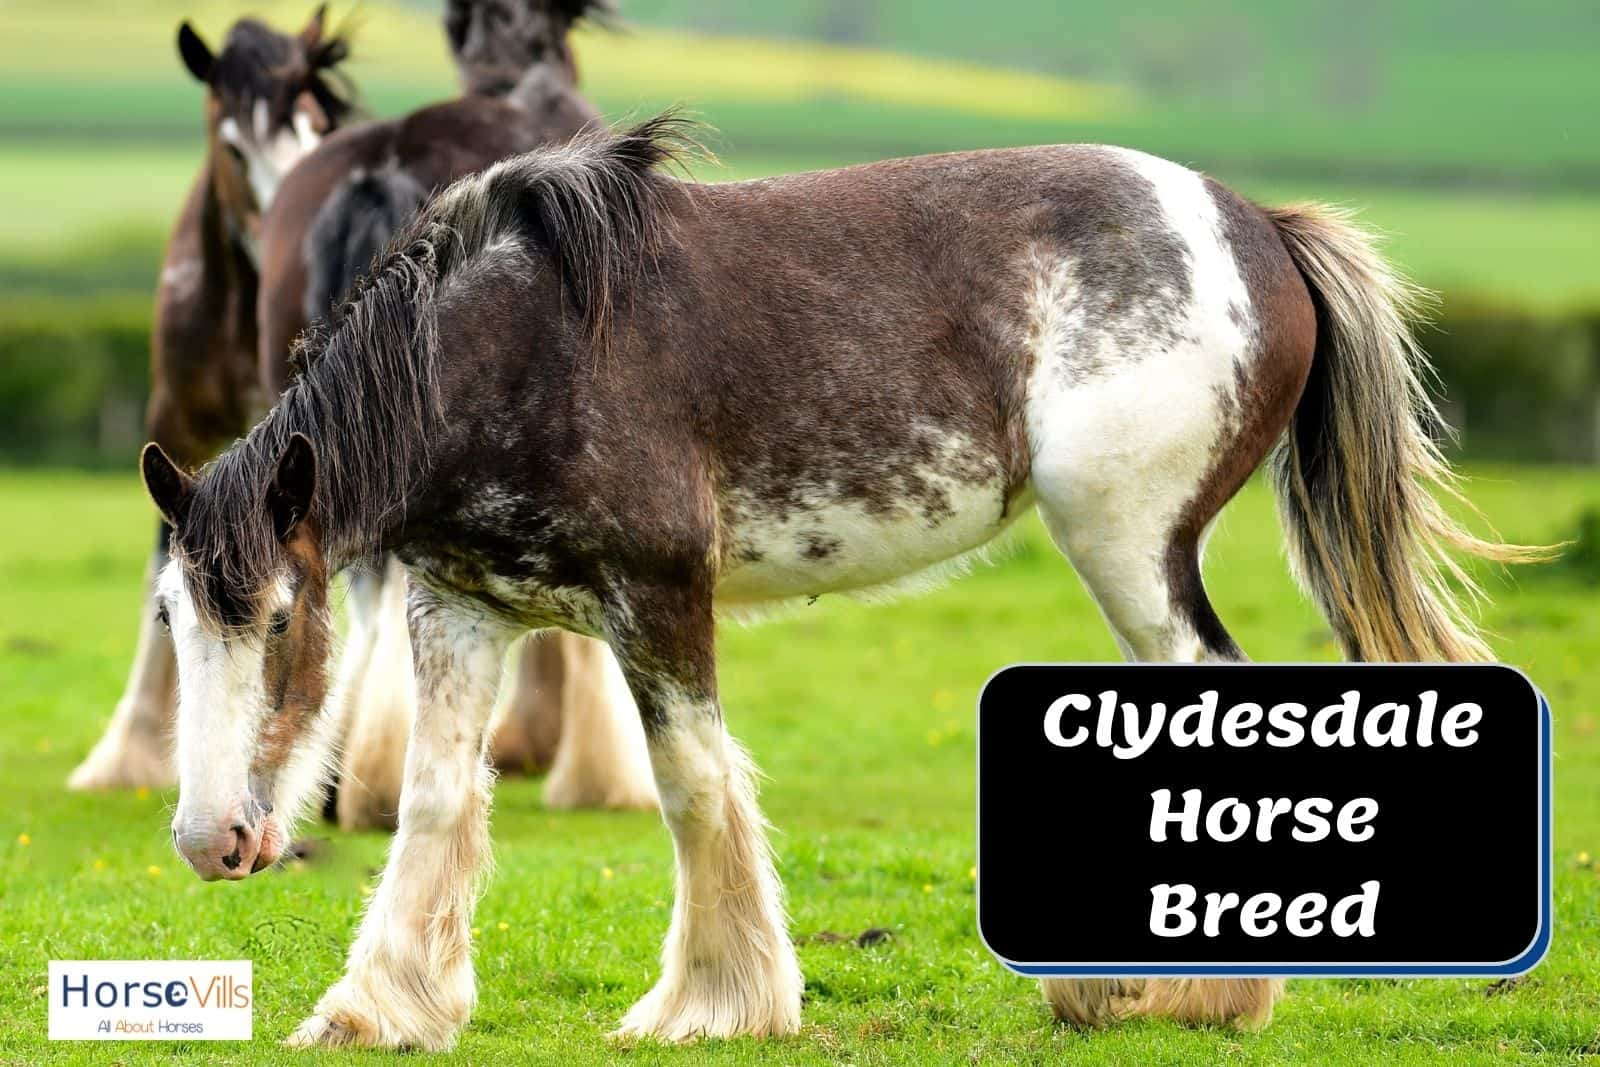 a beautiful Clydesdale horse